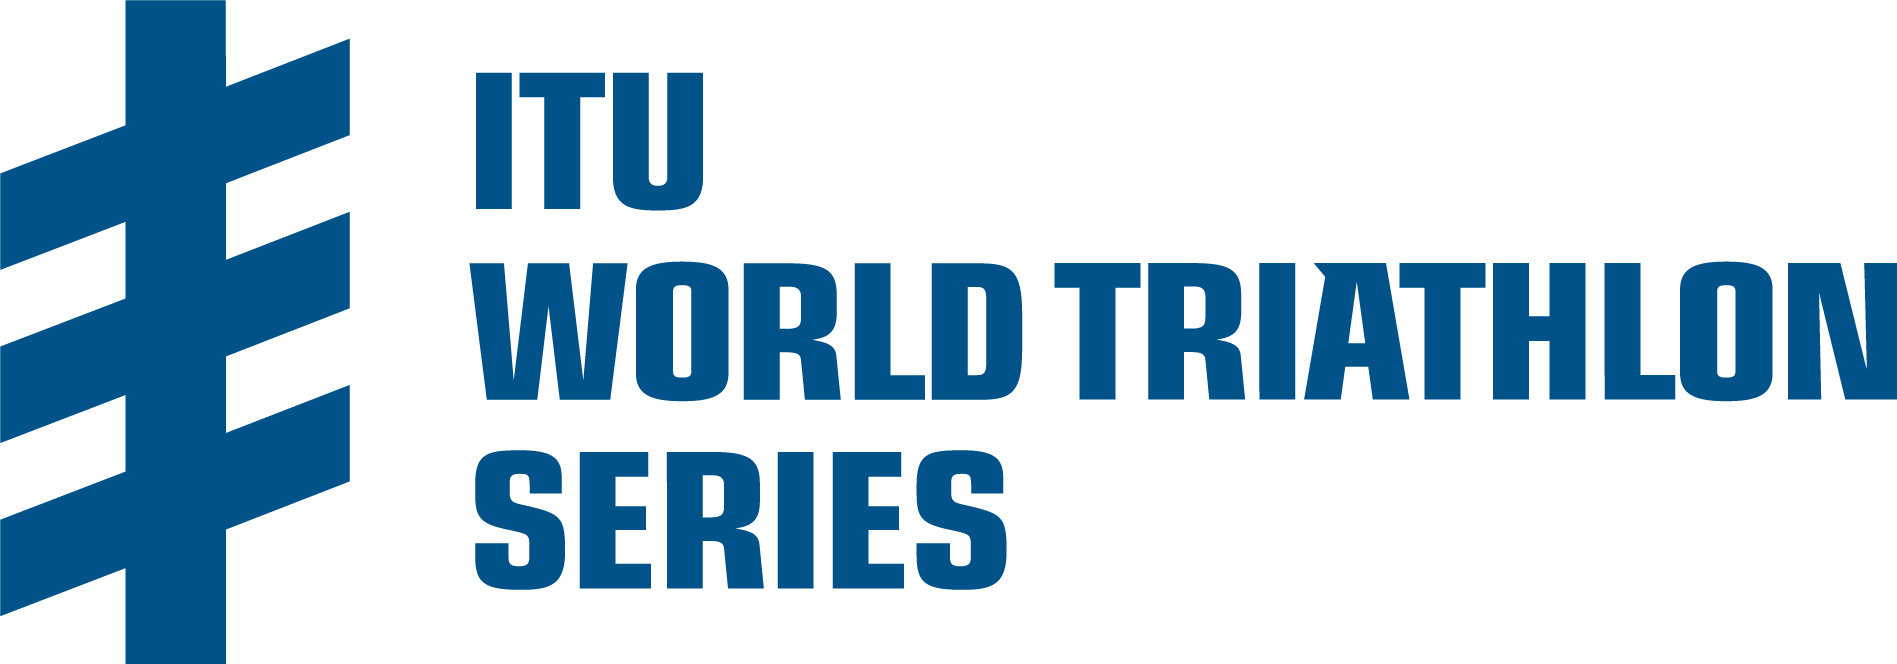 World Triathlon Series logo